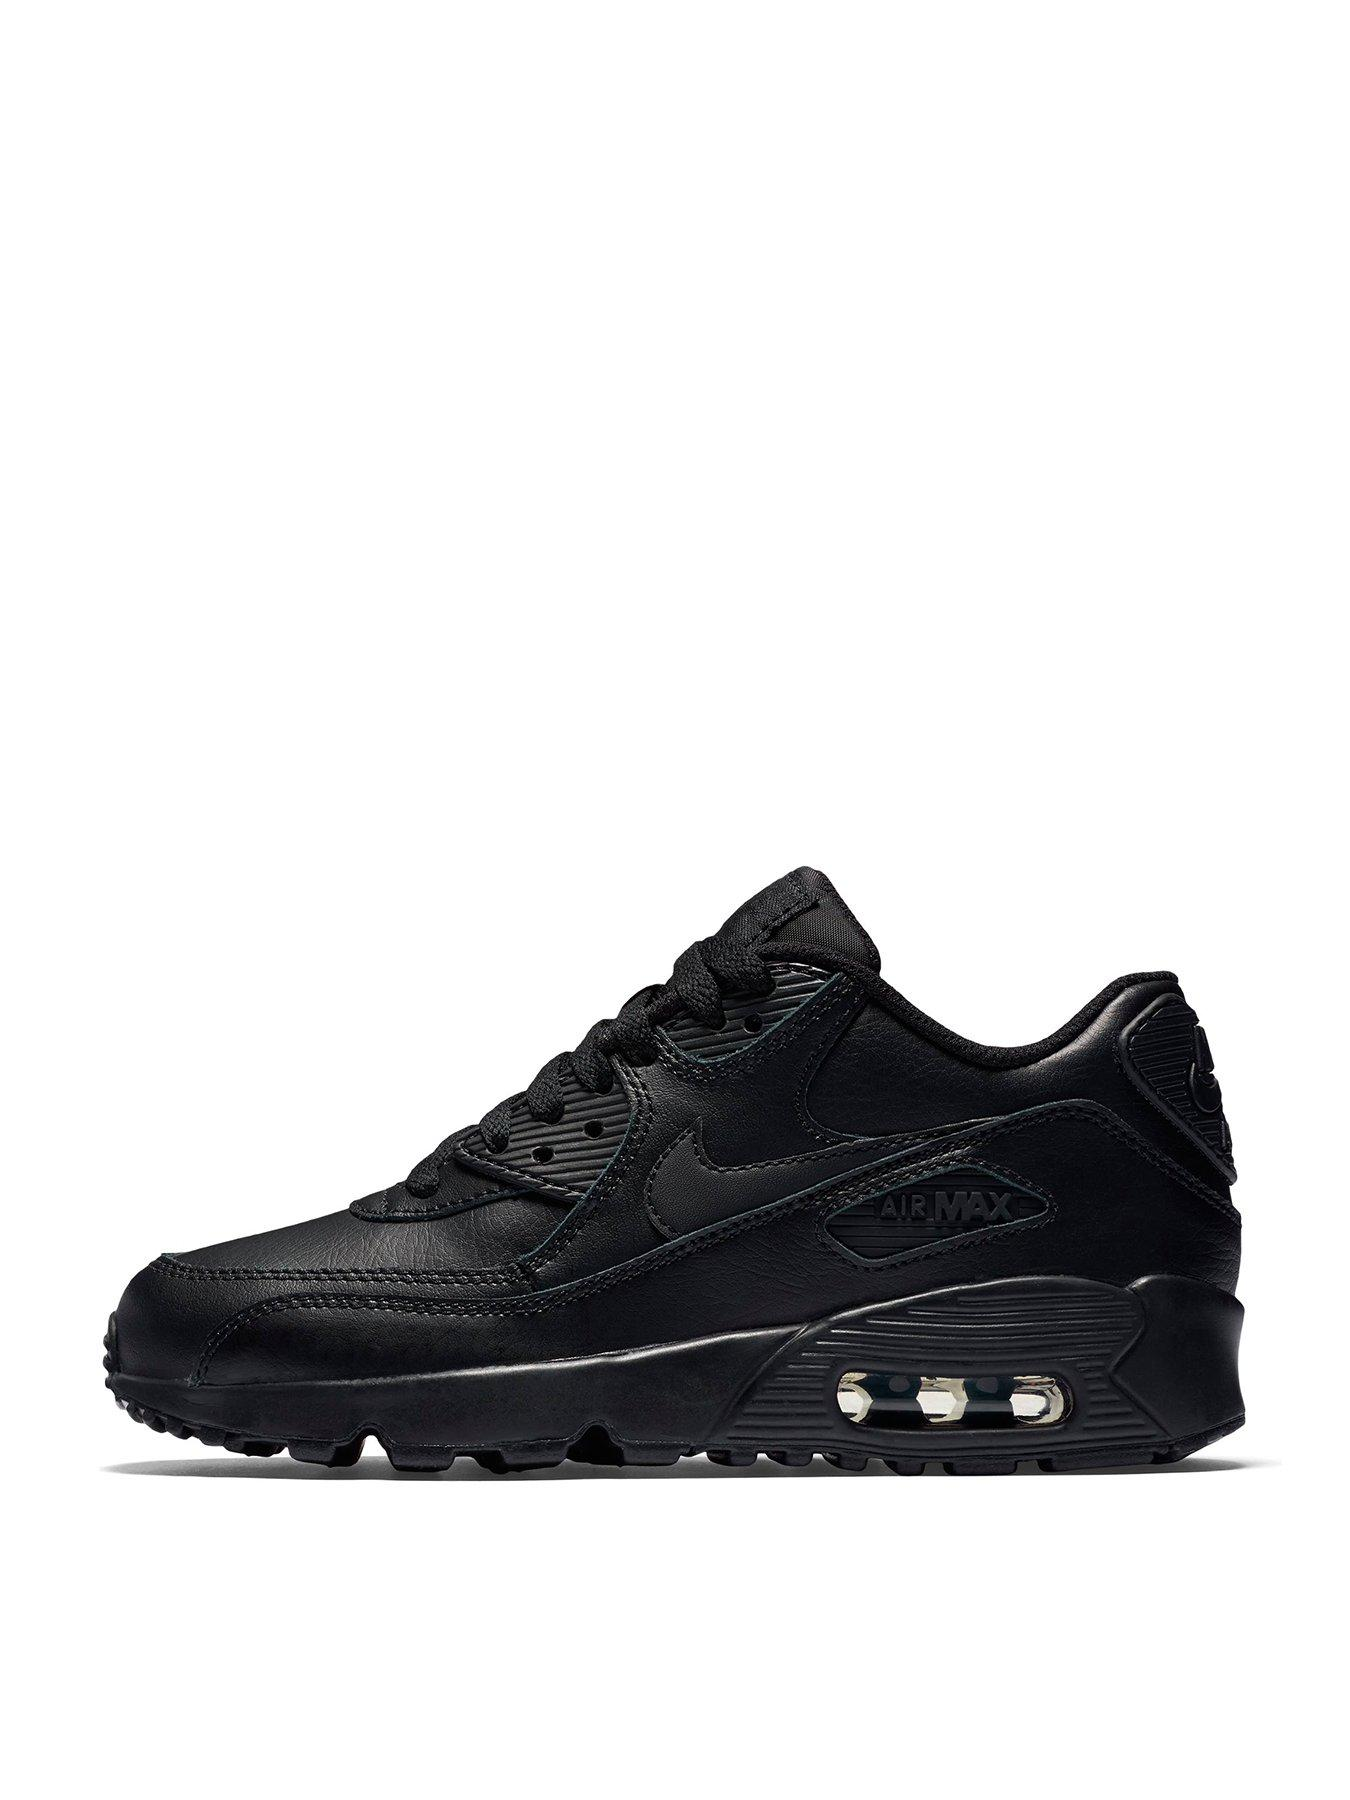 Nike Air Max 90 | Kids & baby sports shoes | Sports